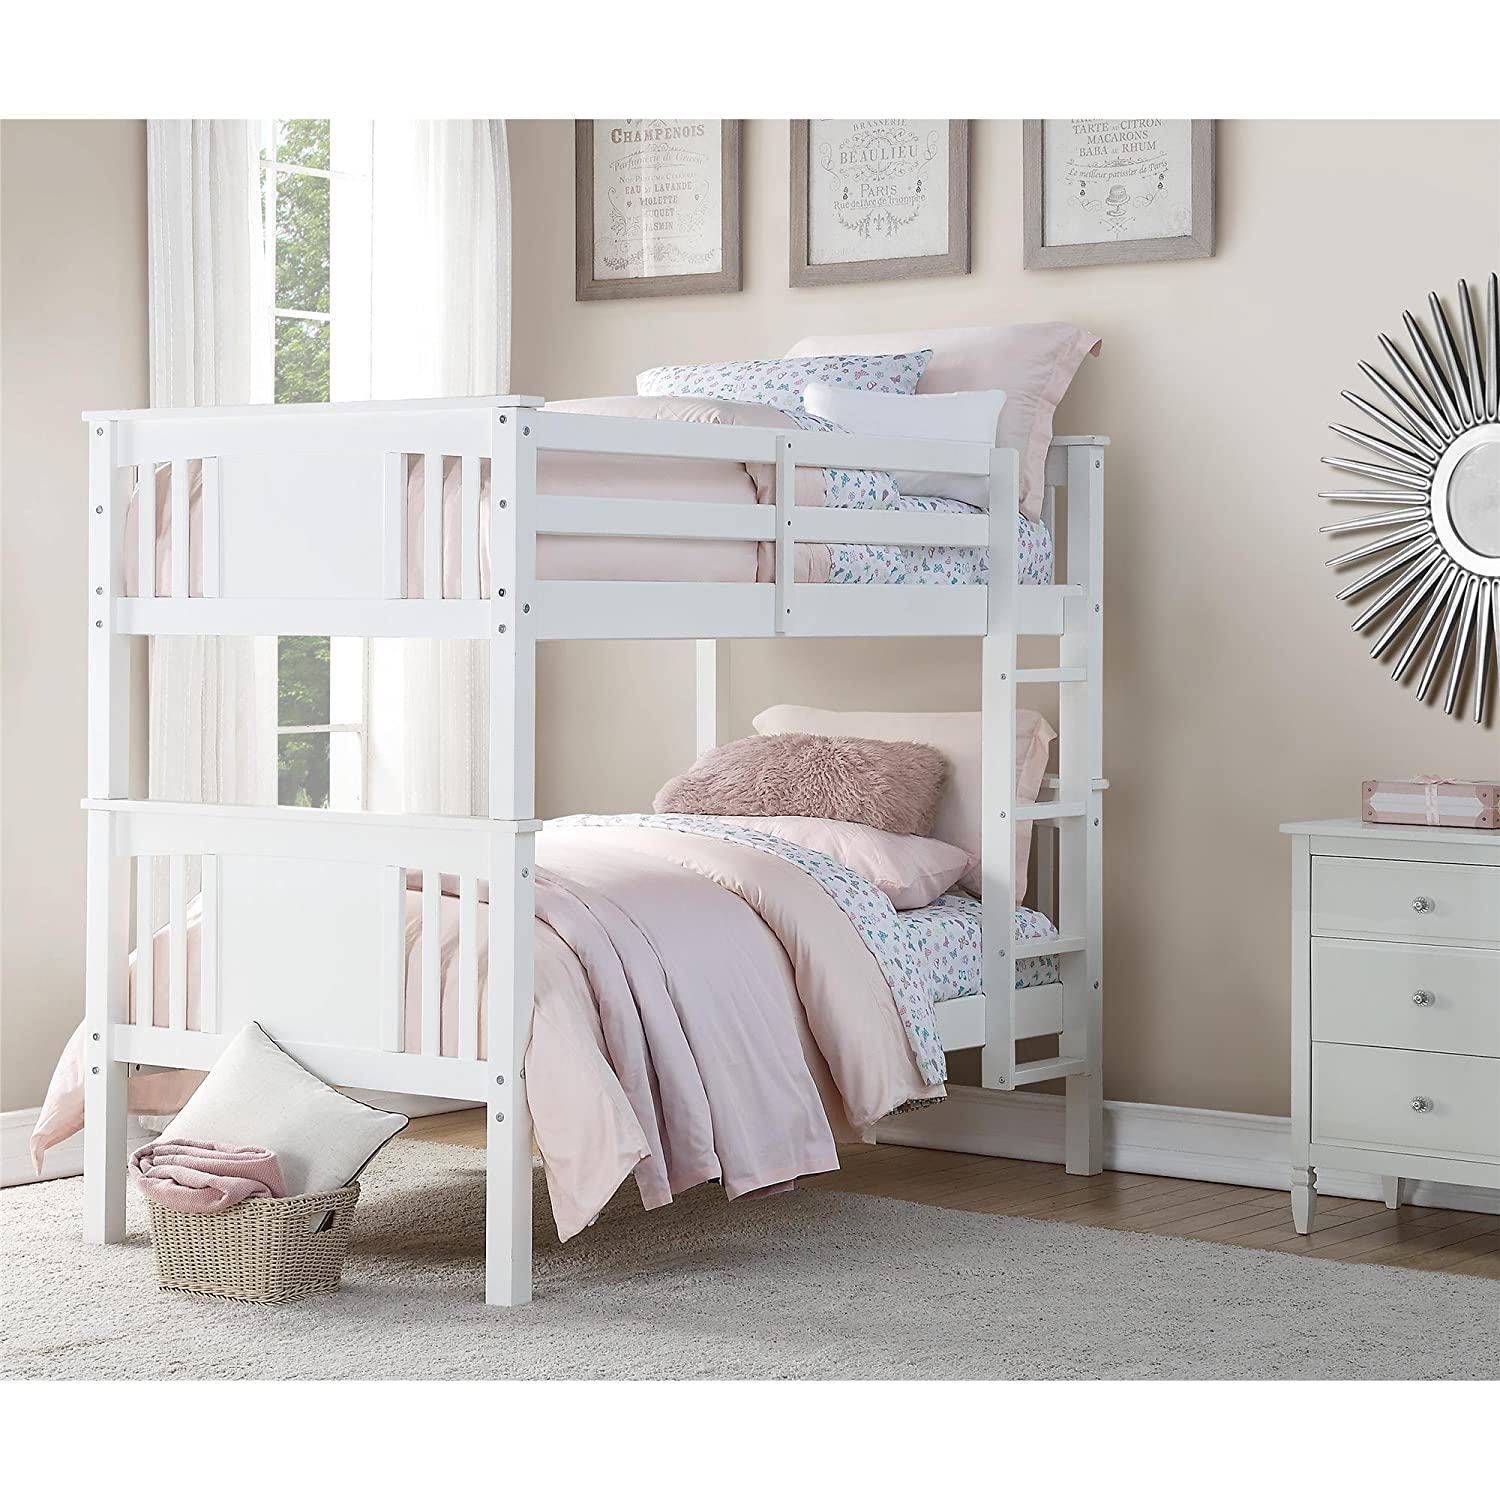 Dorel Living Dylan Bunk Bed, Twin, White